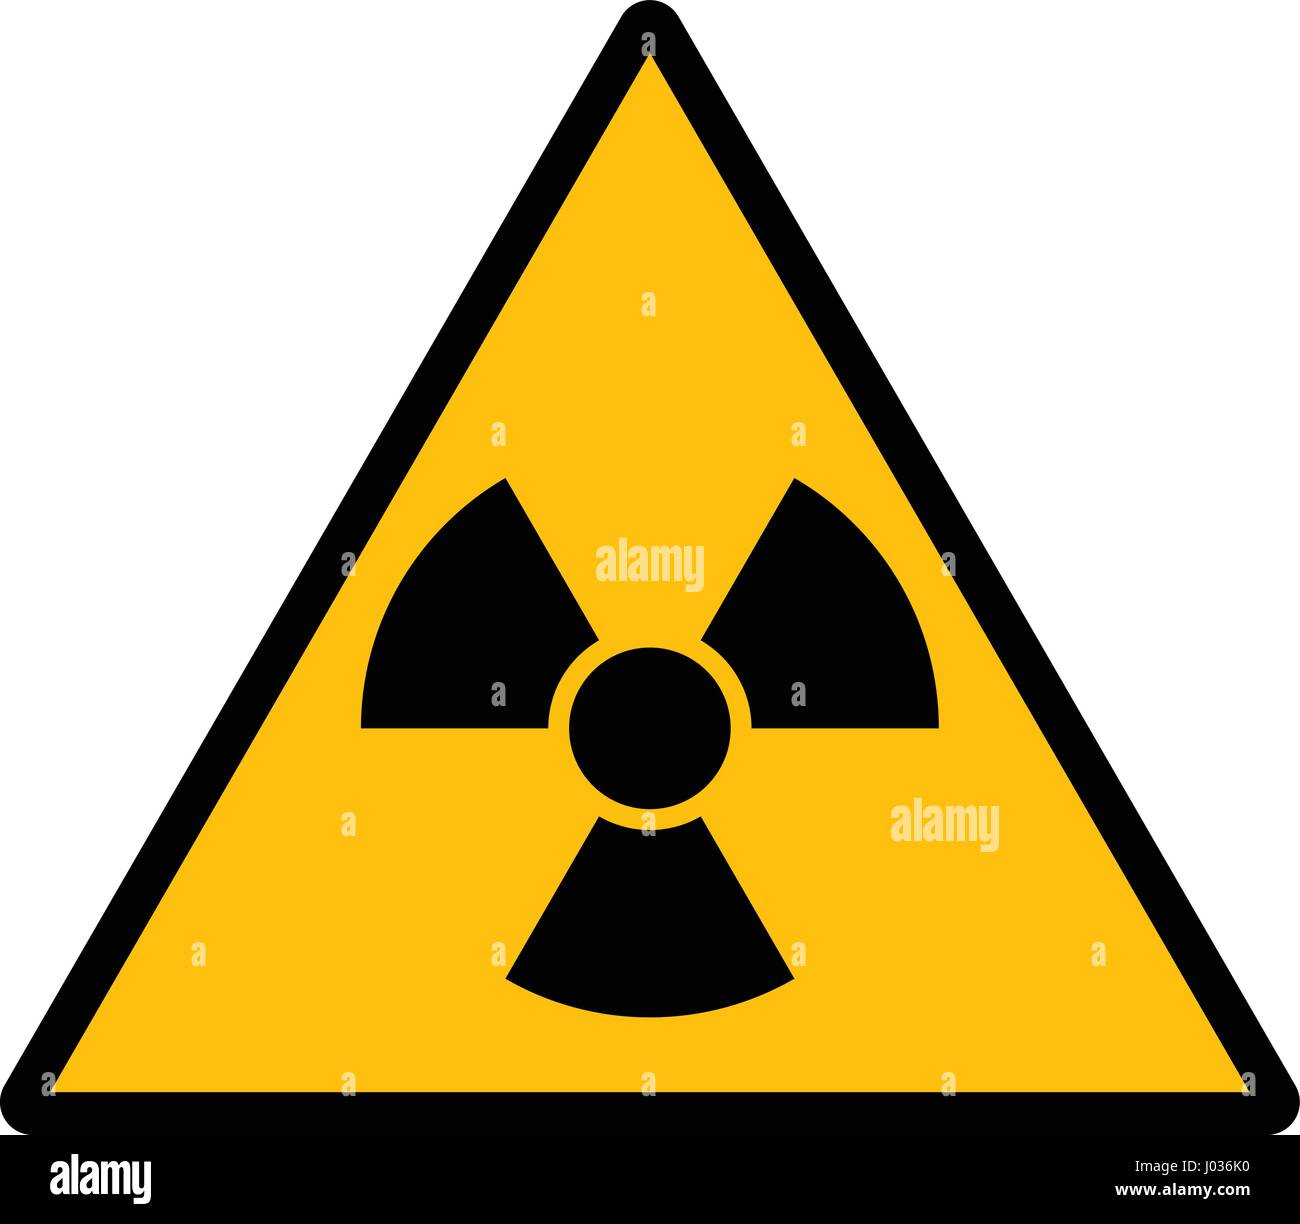 The radiation sign vector design isolated on white background - Stock Vector